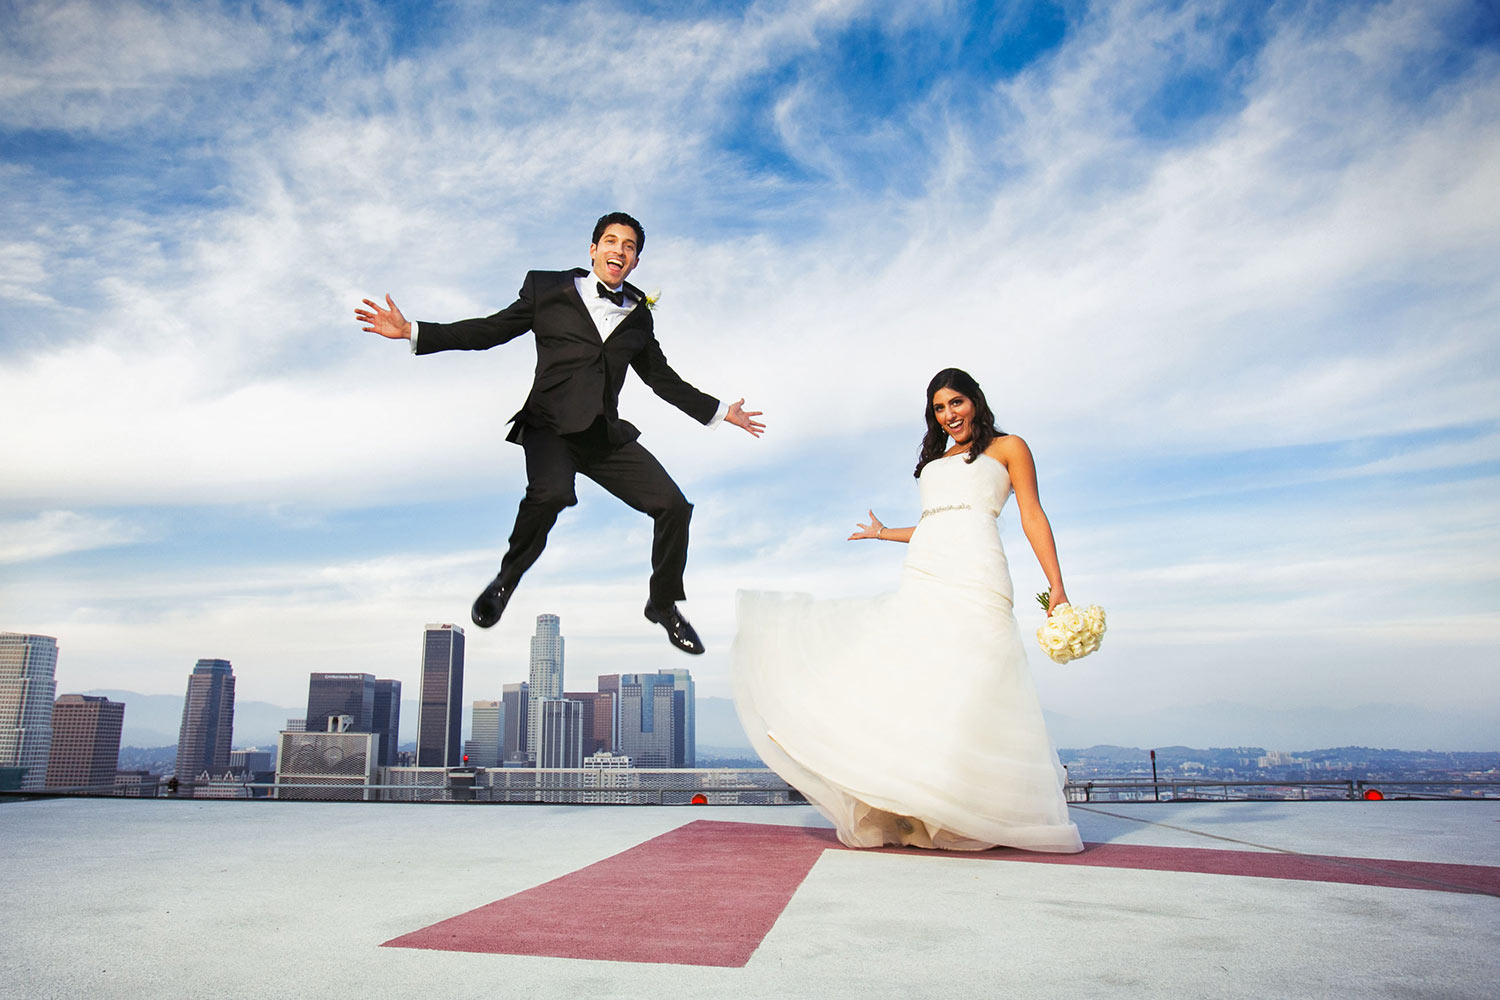 South Park Center Wedding Photo of Bride and Groom on helicopter pad